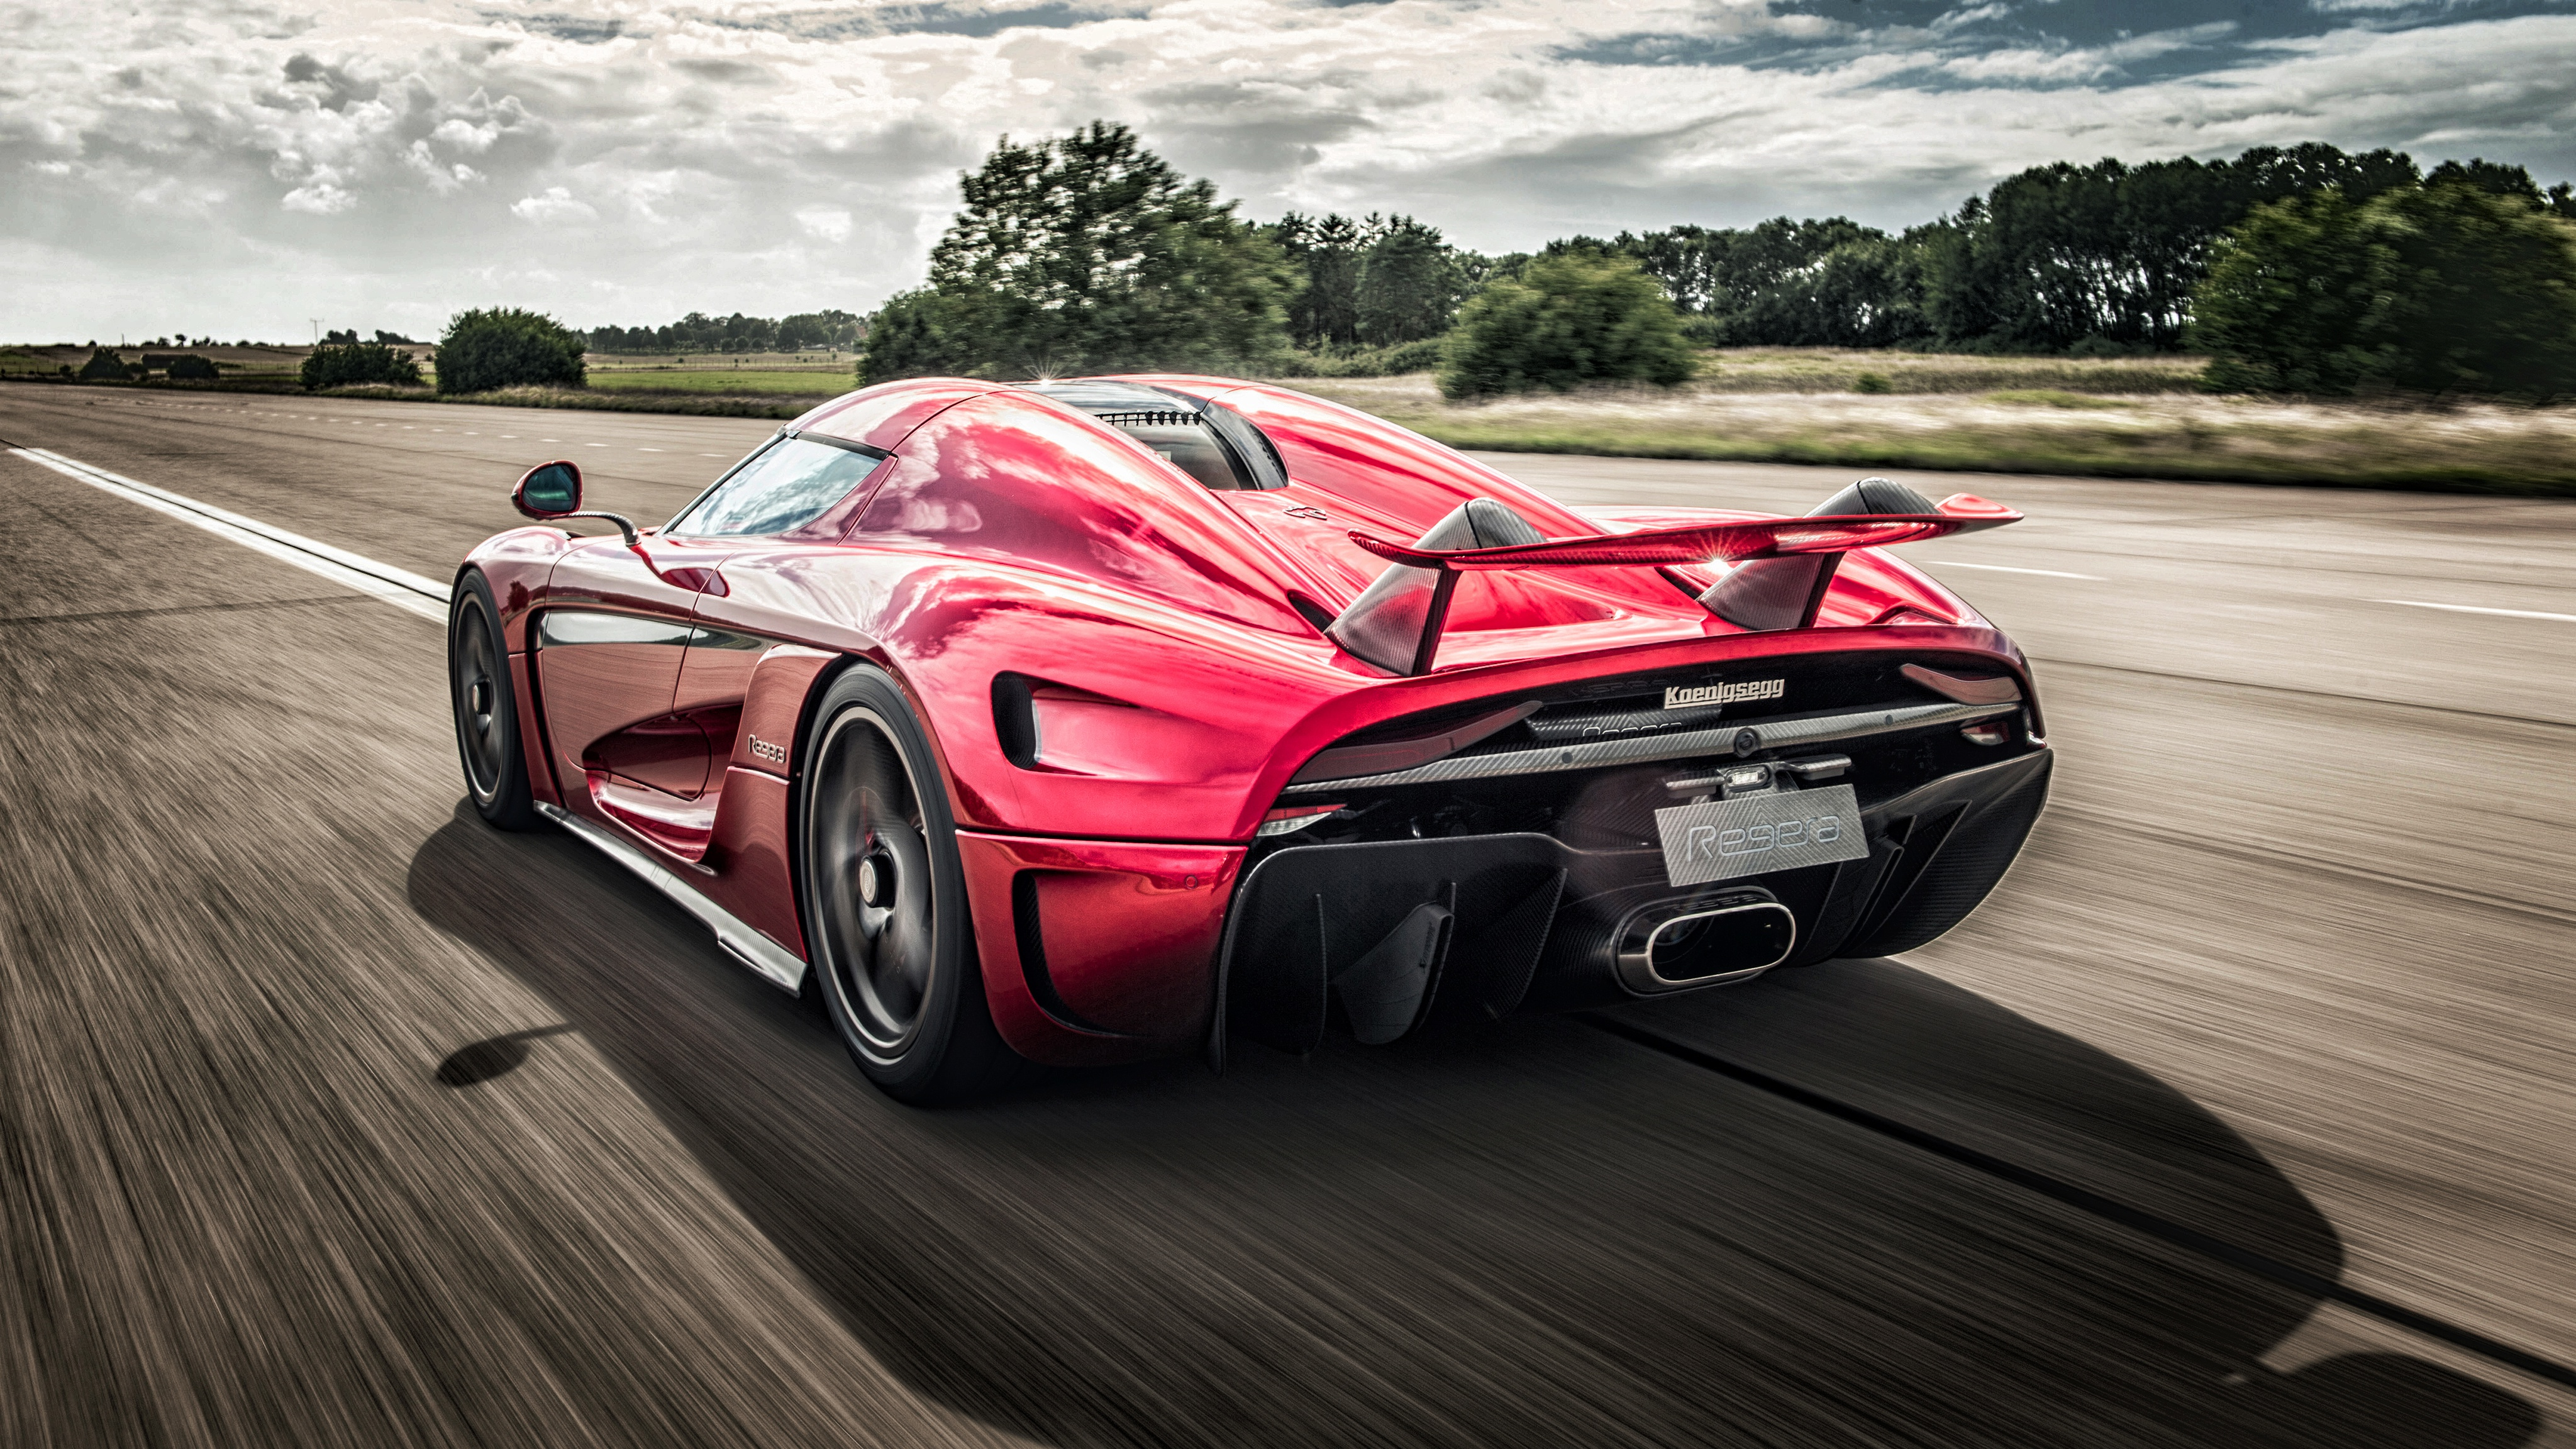 Koenigsegg Regera Wallpapers and Background Images   stmednet 4096x2304